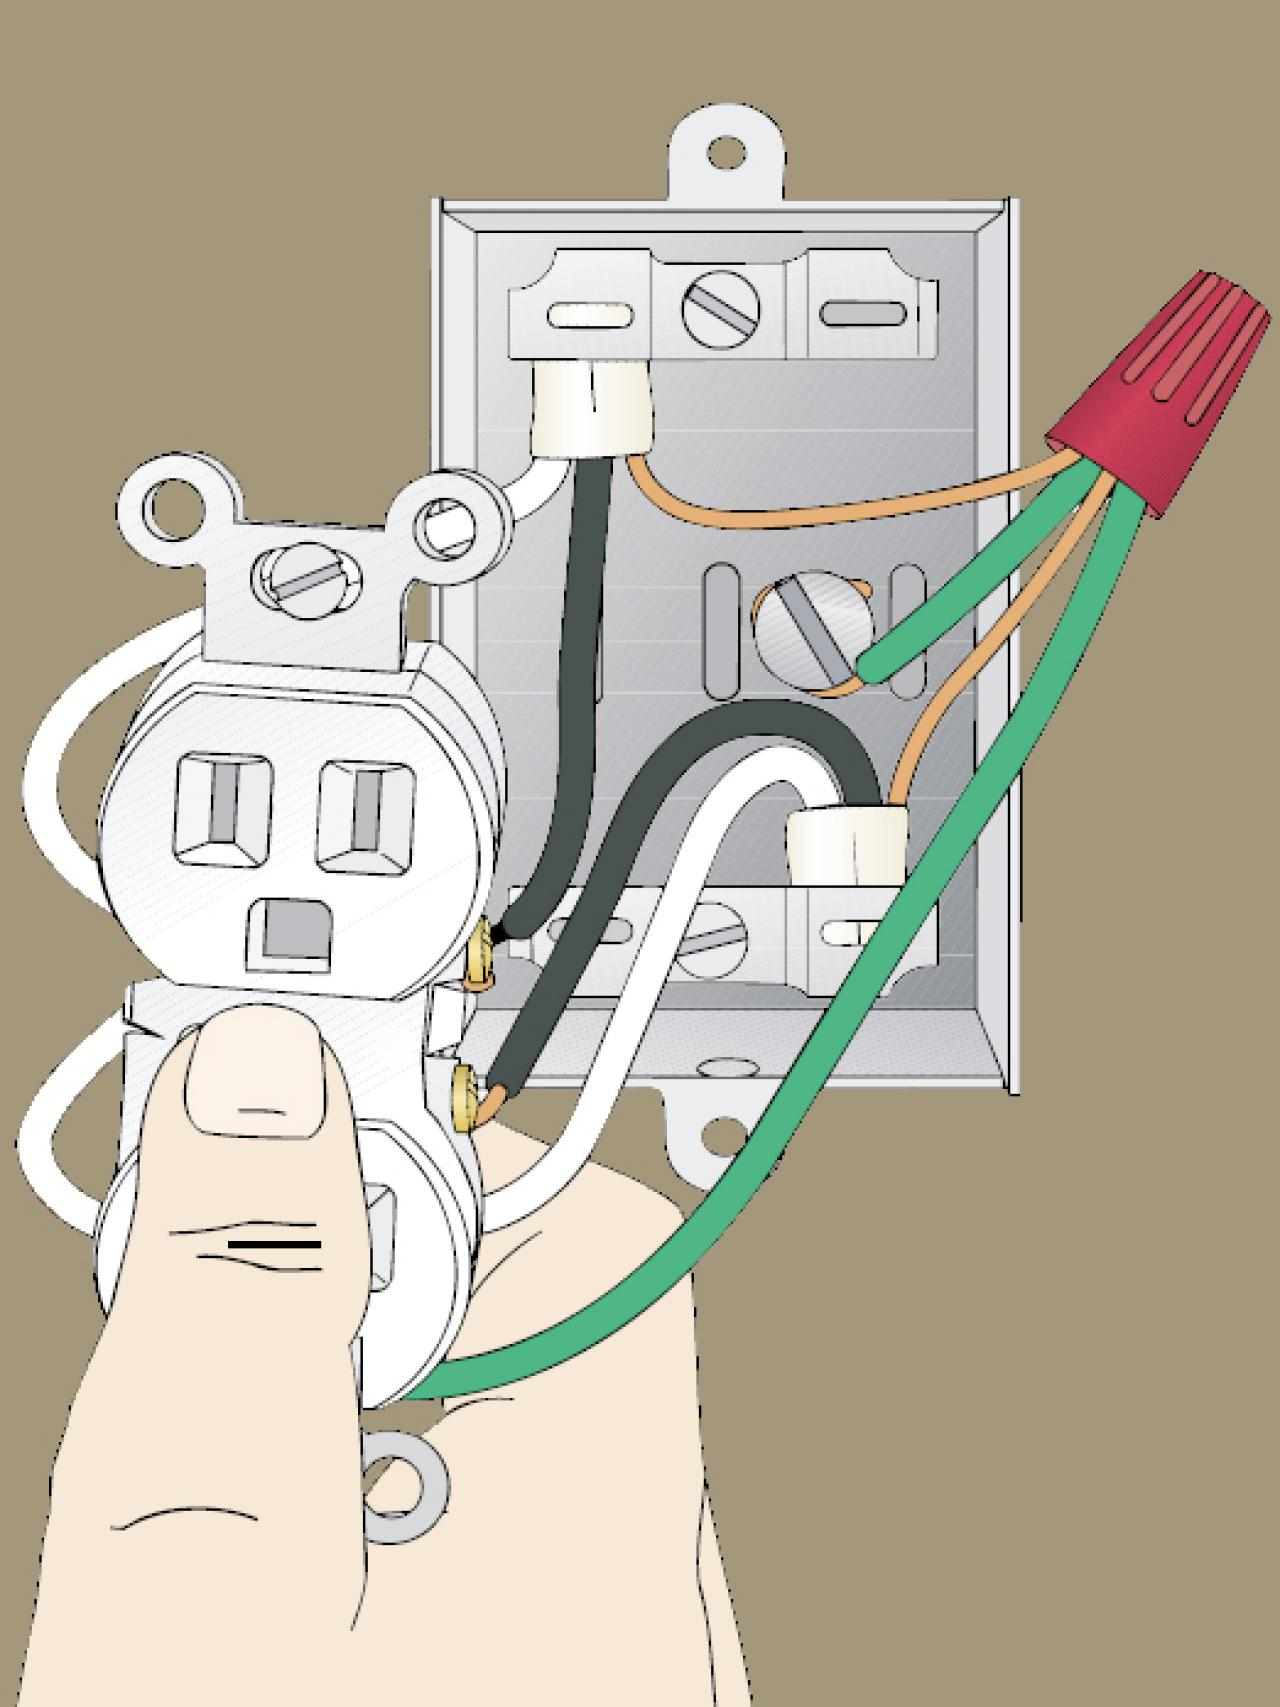 1420774272477 how to identify wiring diy outlet wiring at reclaimingppi.co